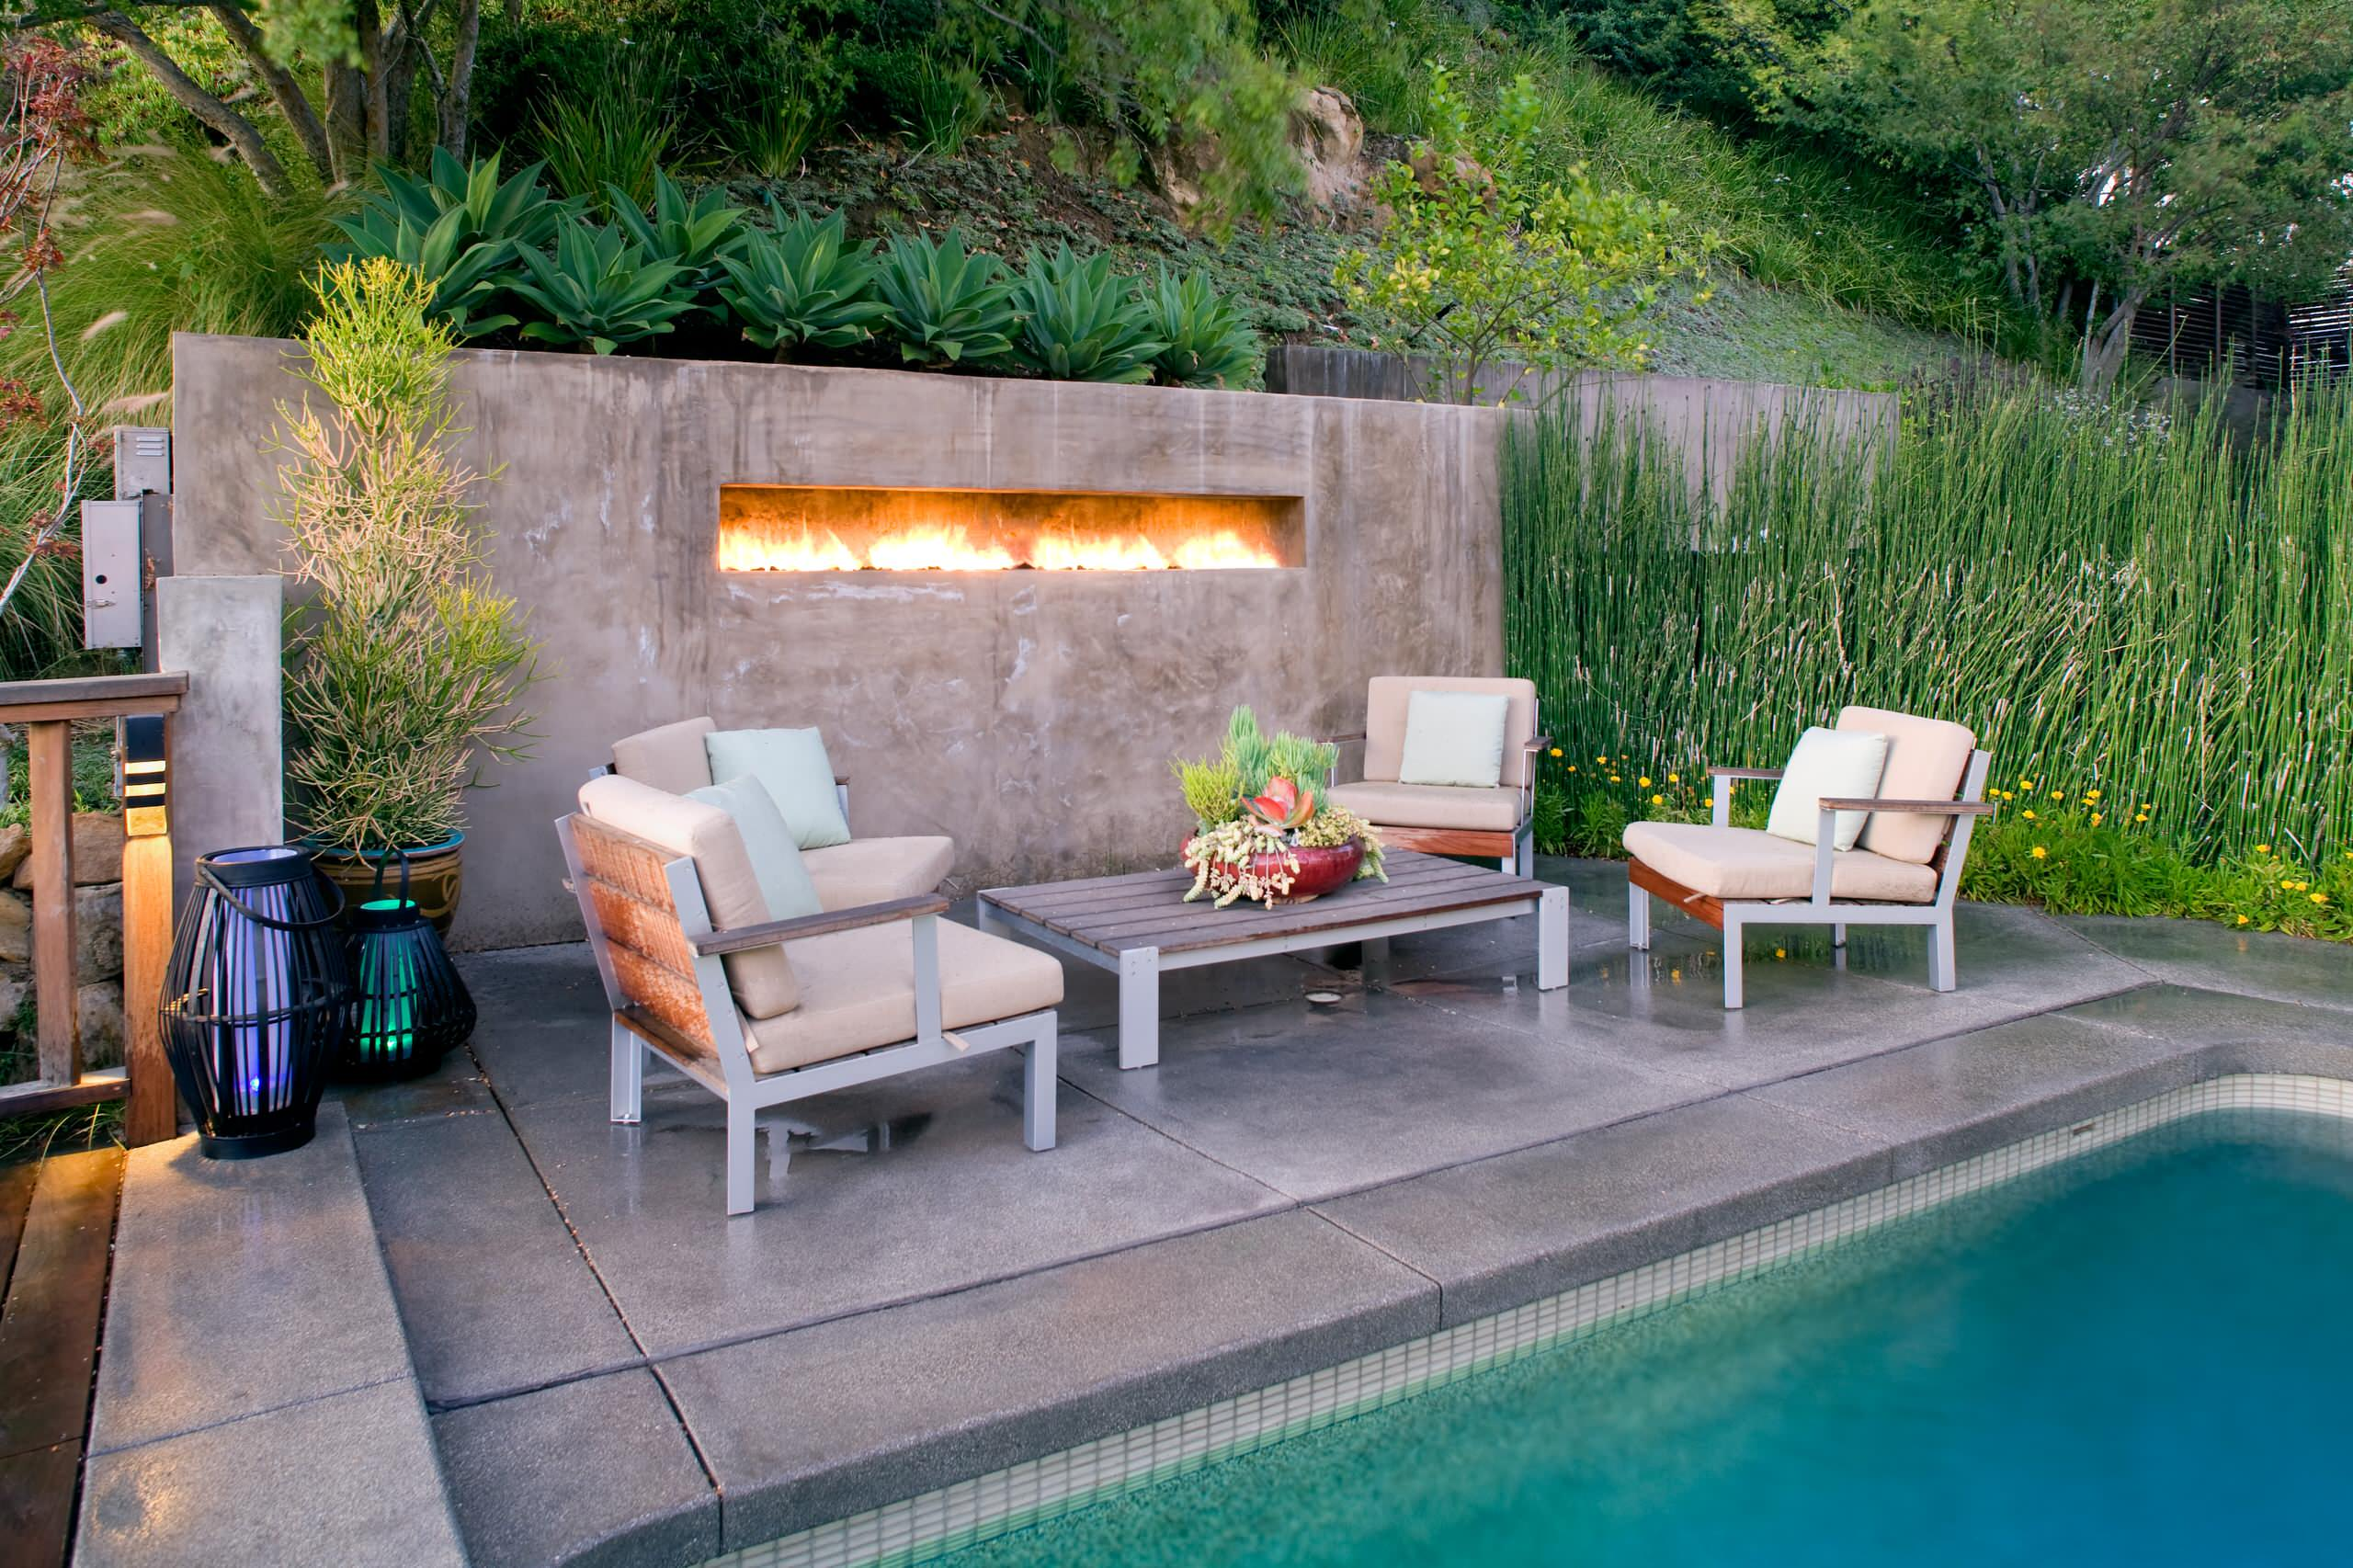 outdoor patio 2. a refreshing mix of fire and water KZLDDCR